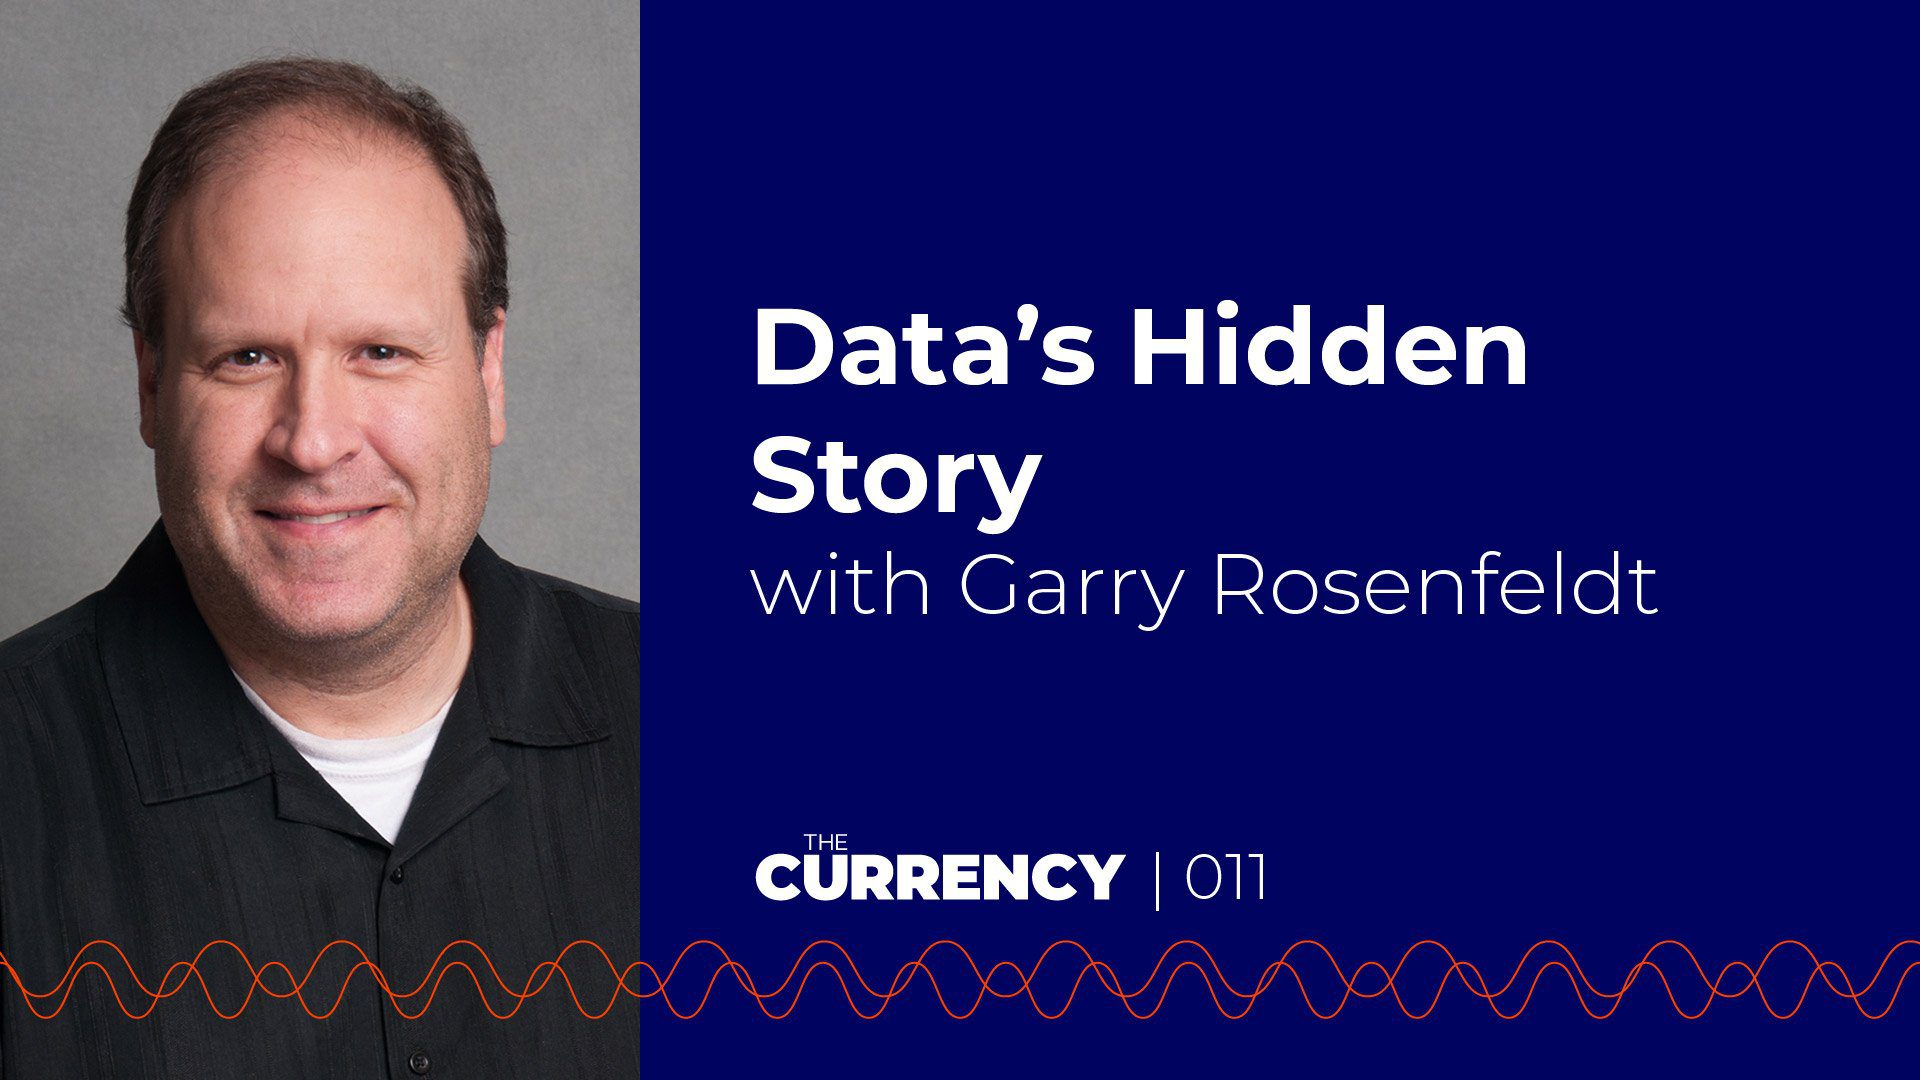 The Currency: [011] Data's Hidden Story with Garry Rosenfeldt